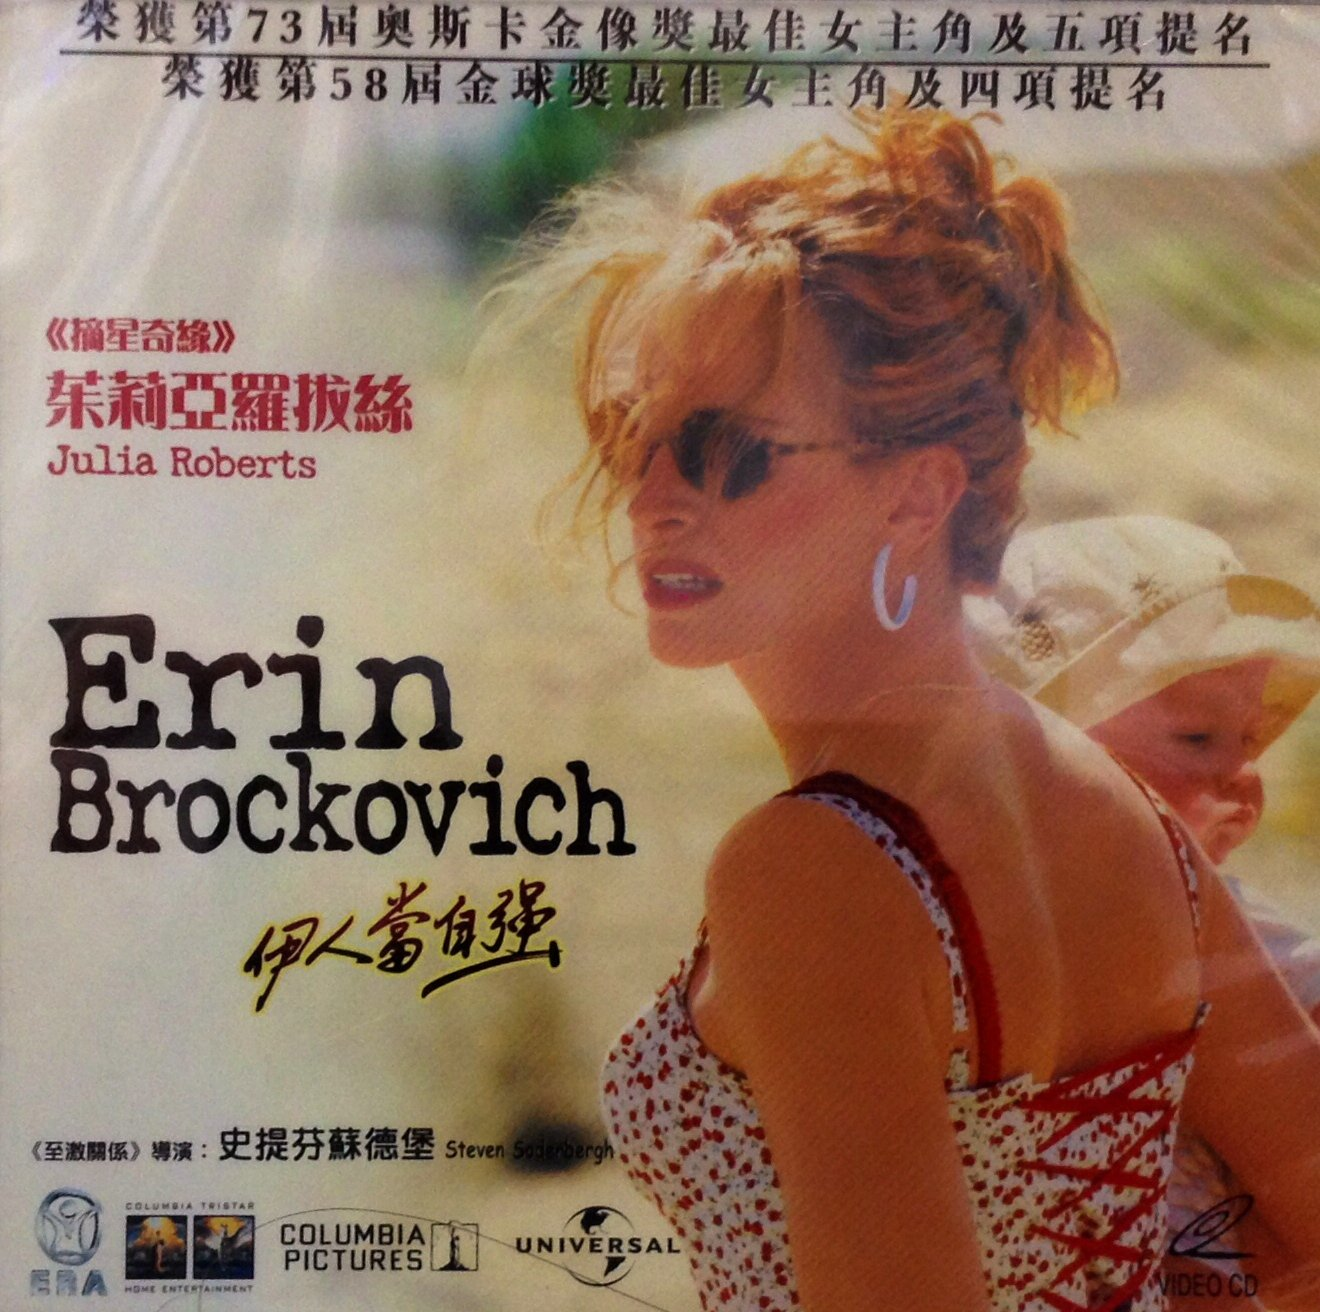 Amazon Com Erin Brockovich 2000 By Era Version Vcd In English W Chinese Subtitles Imported From Hong Kong Julia Roberts Albert Finney David Brisbin Steven Soderbergh Movies Tv